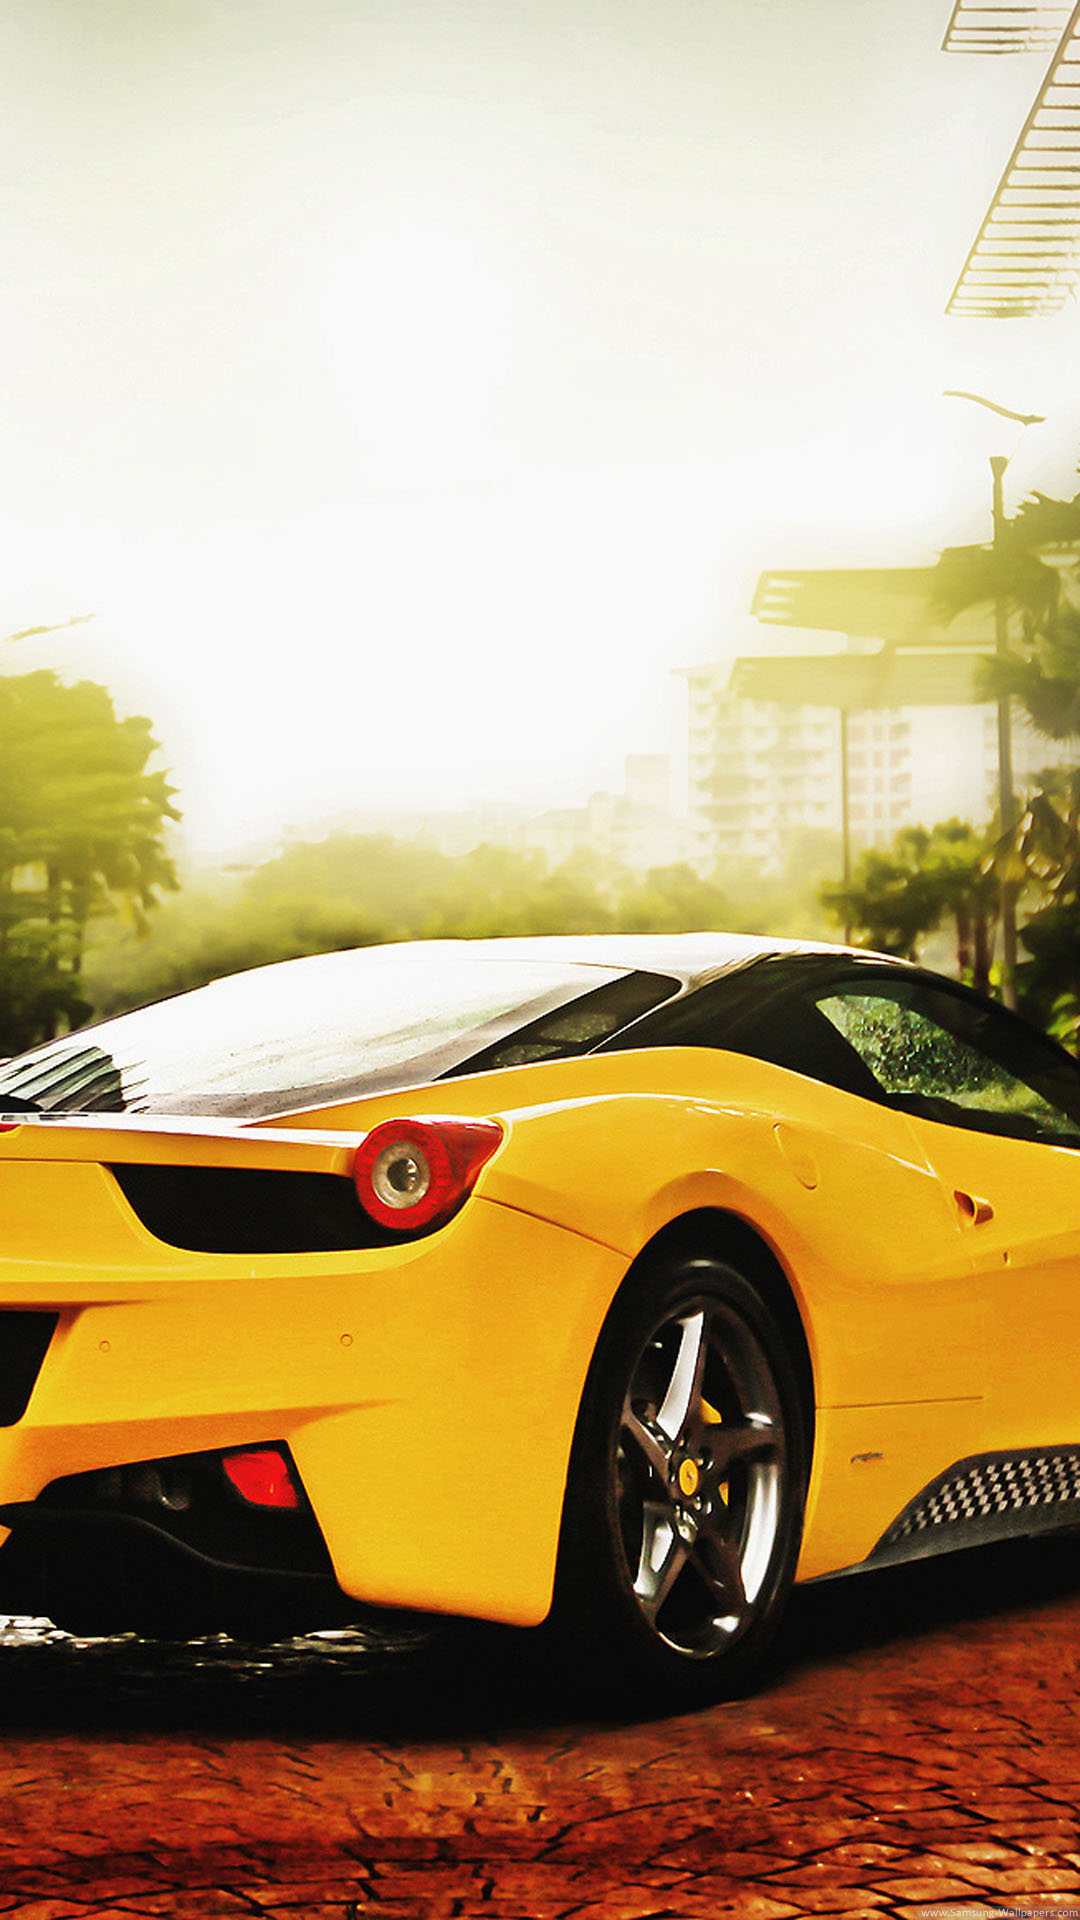 iPhone wallpaper ferrari yellow Les 3Wallpapers iPhone du jour (07/03/2018)